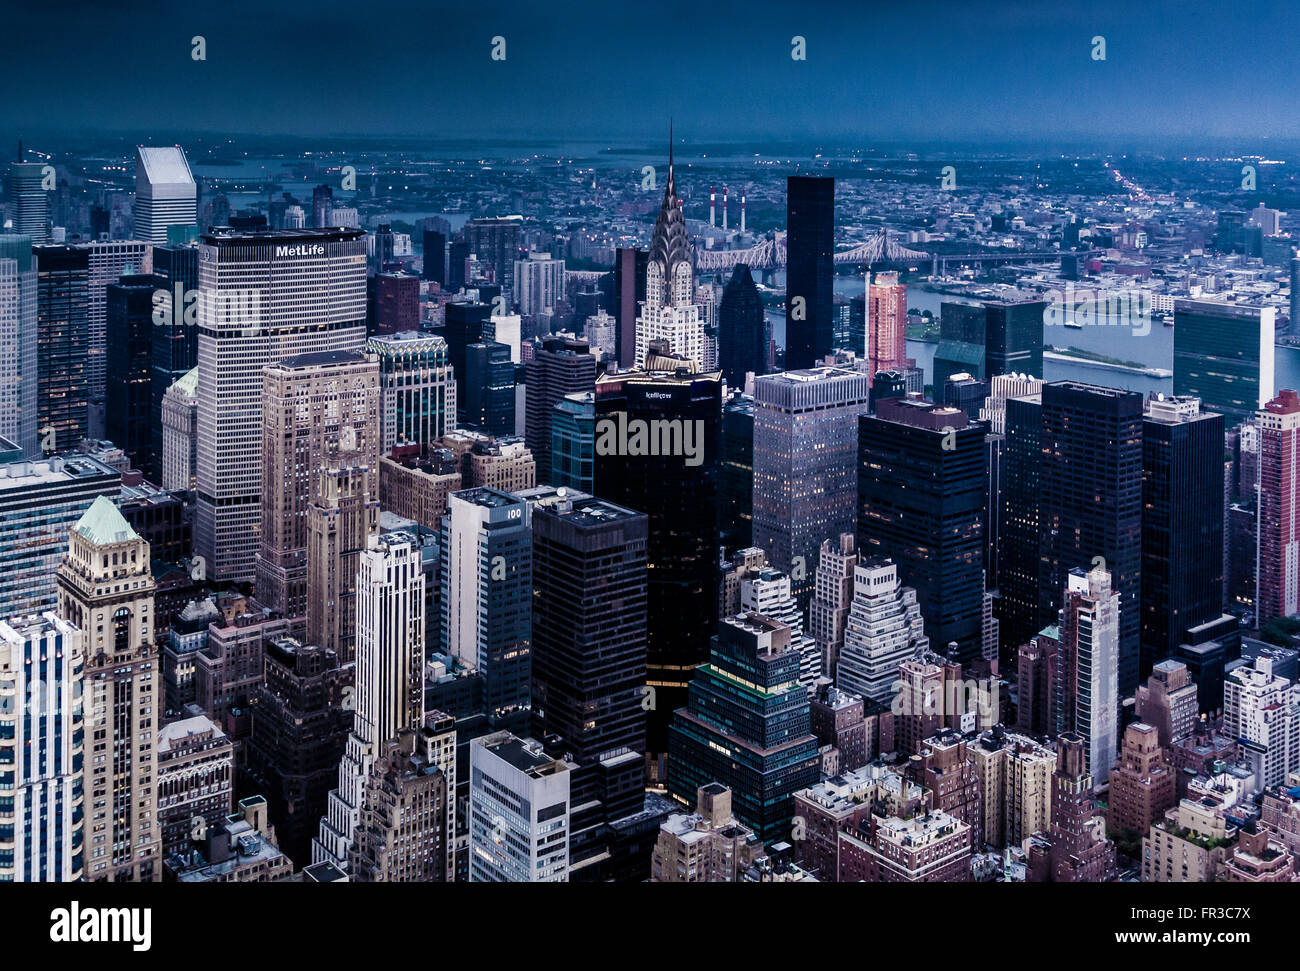 View from the Empire State Building looking North East with top of Chrysler Building visible, New York city, USA - Stock Image